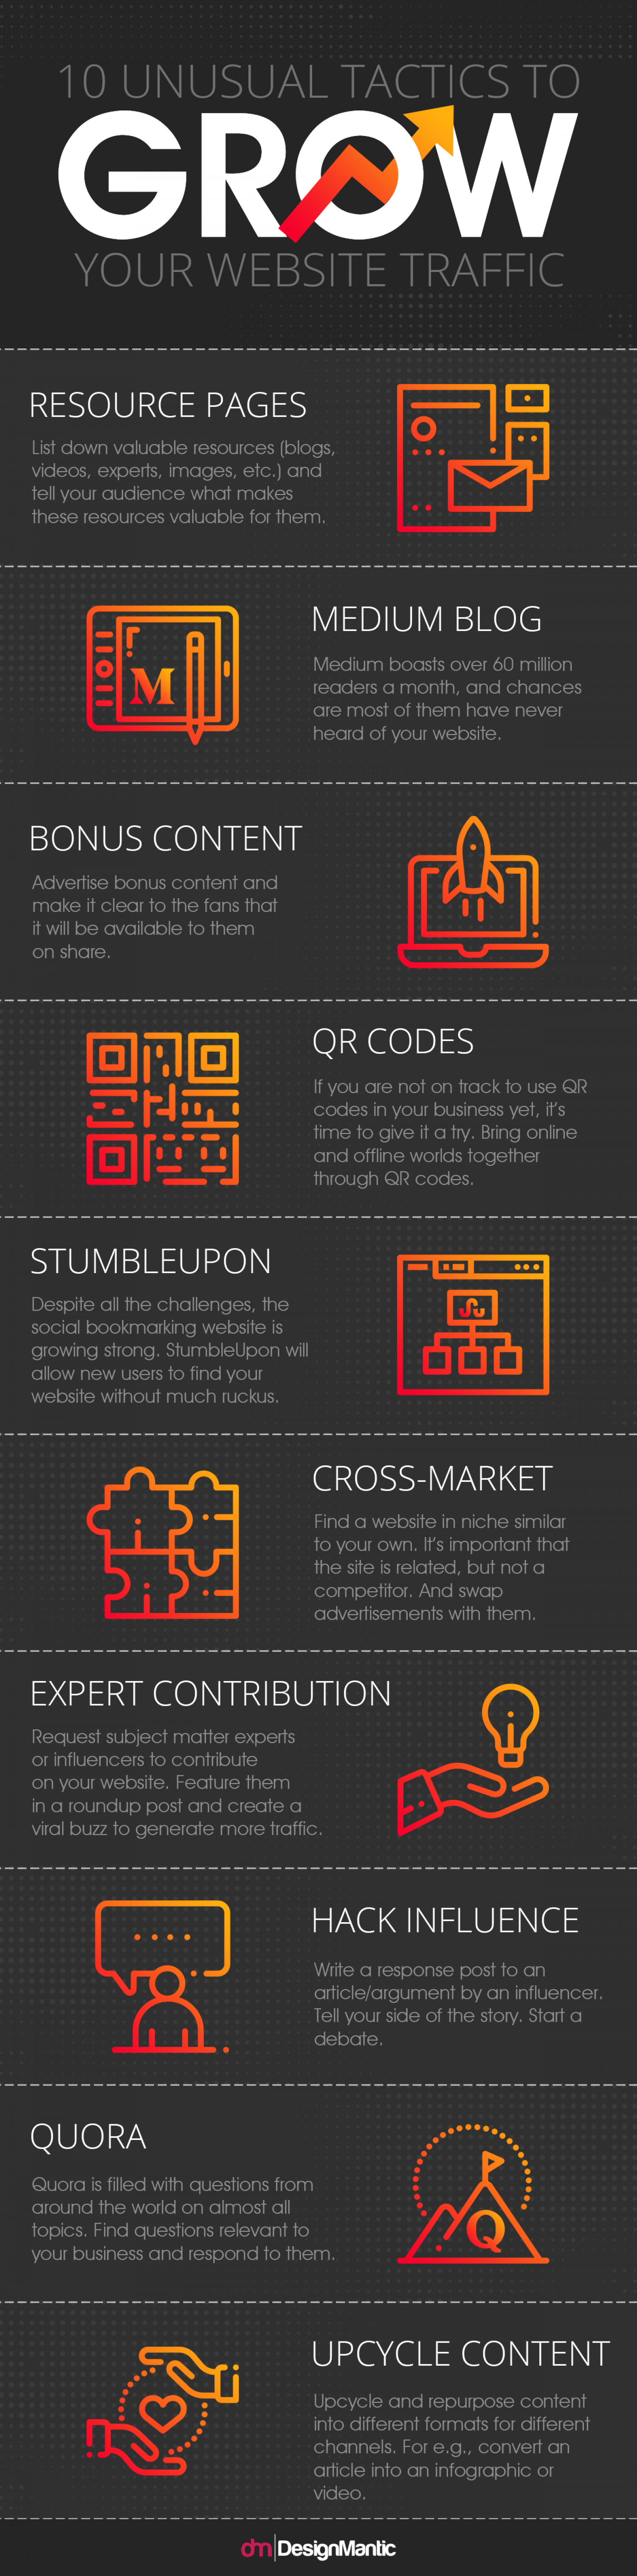 10 Unusual Ways To Grow Your Website Traffic Infographic